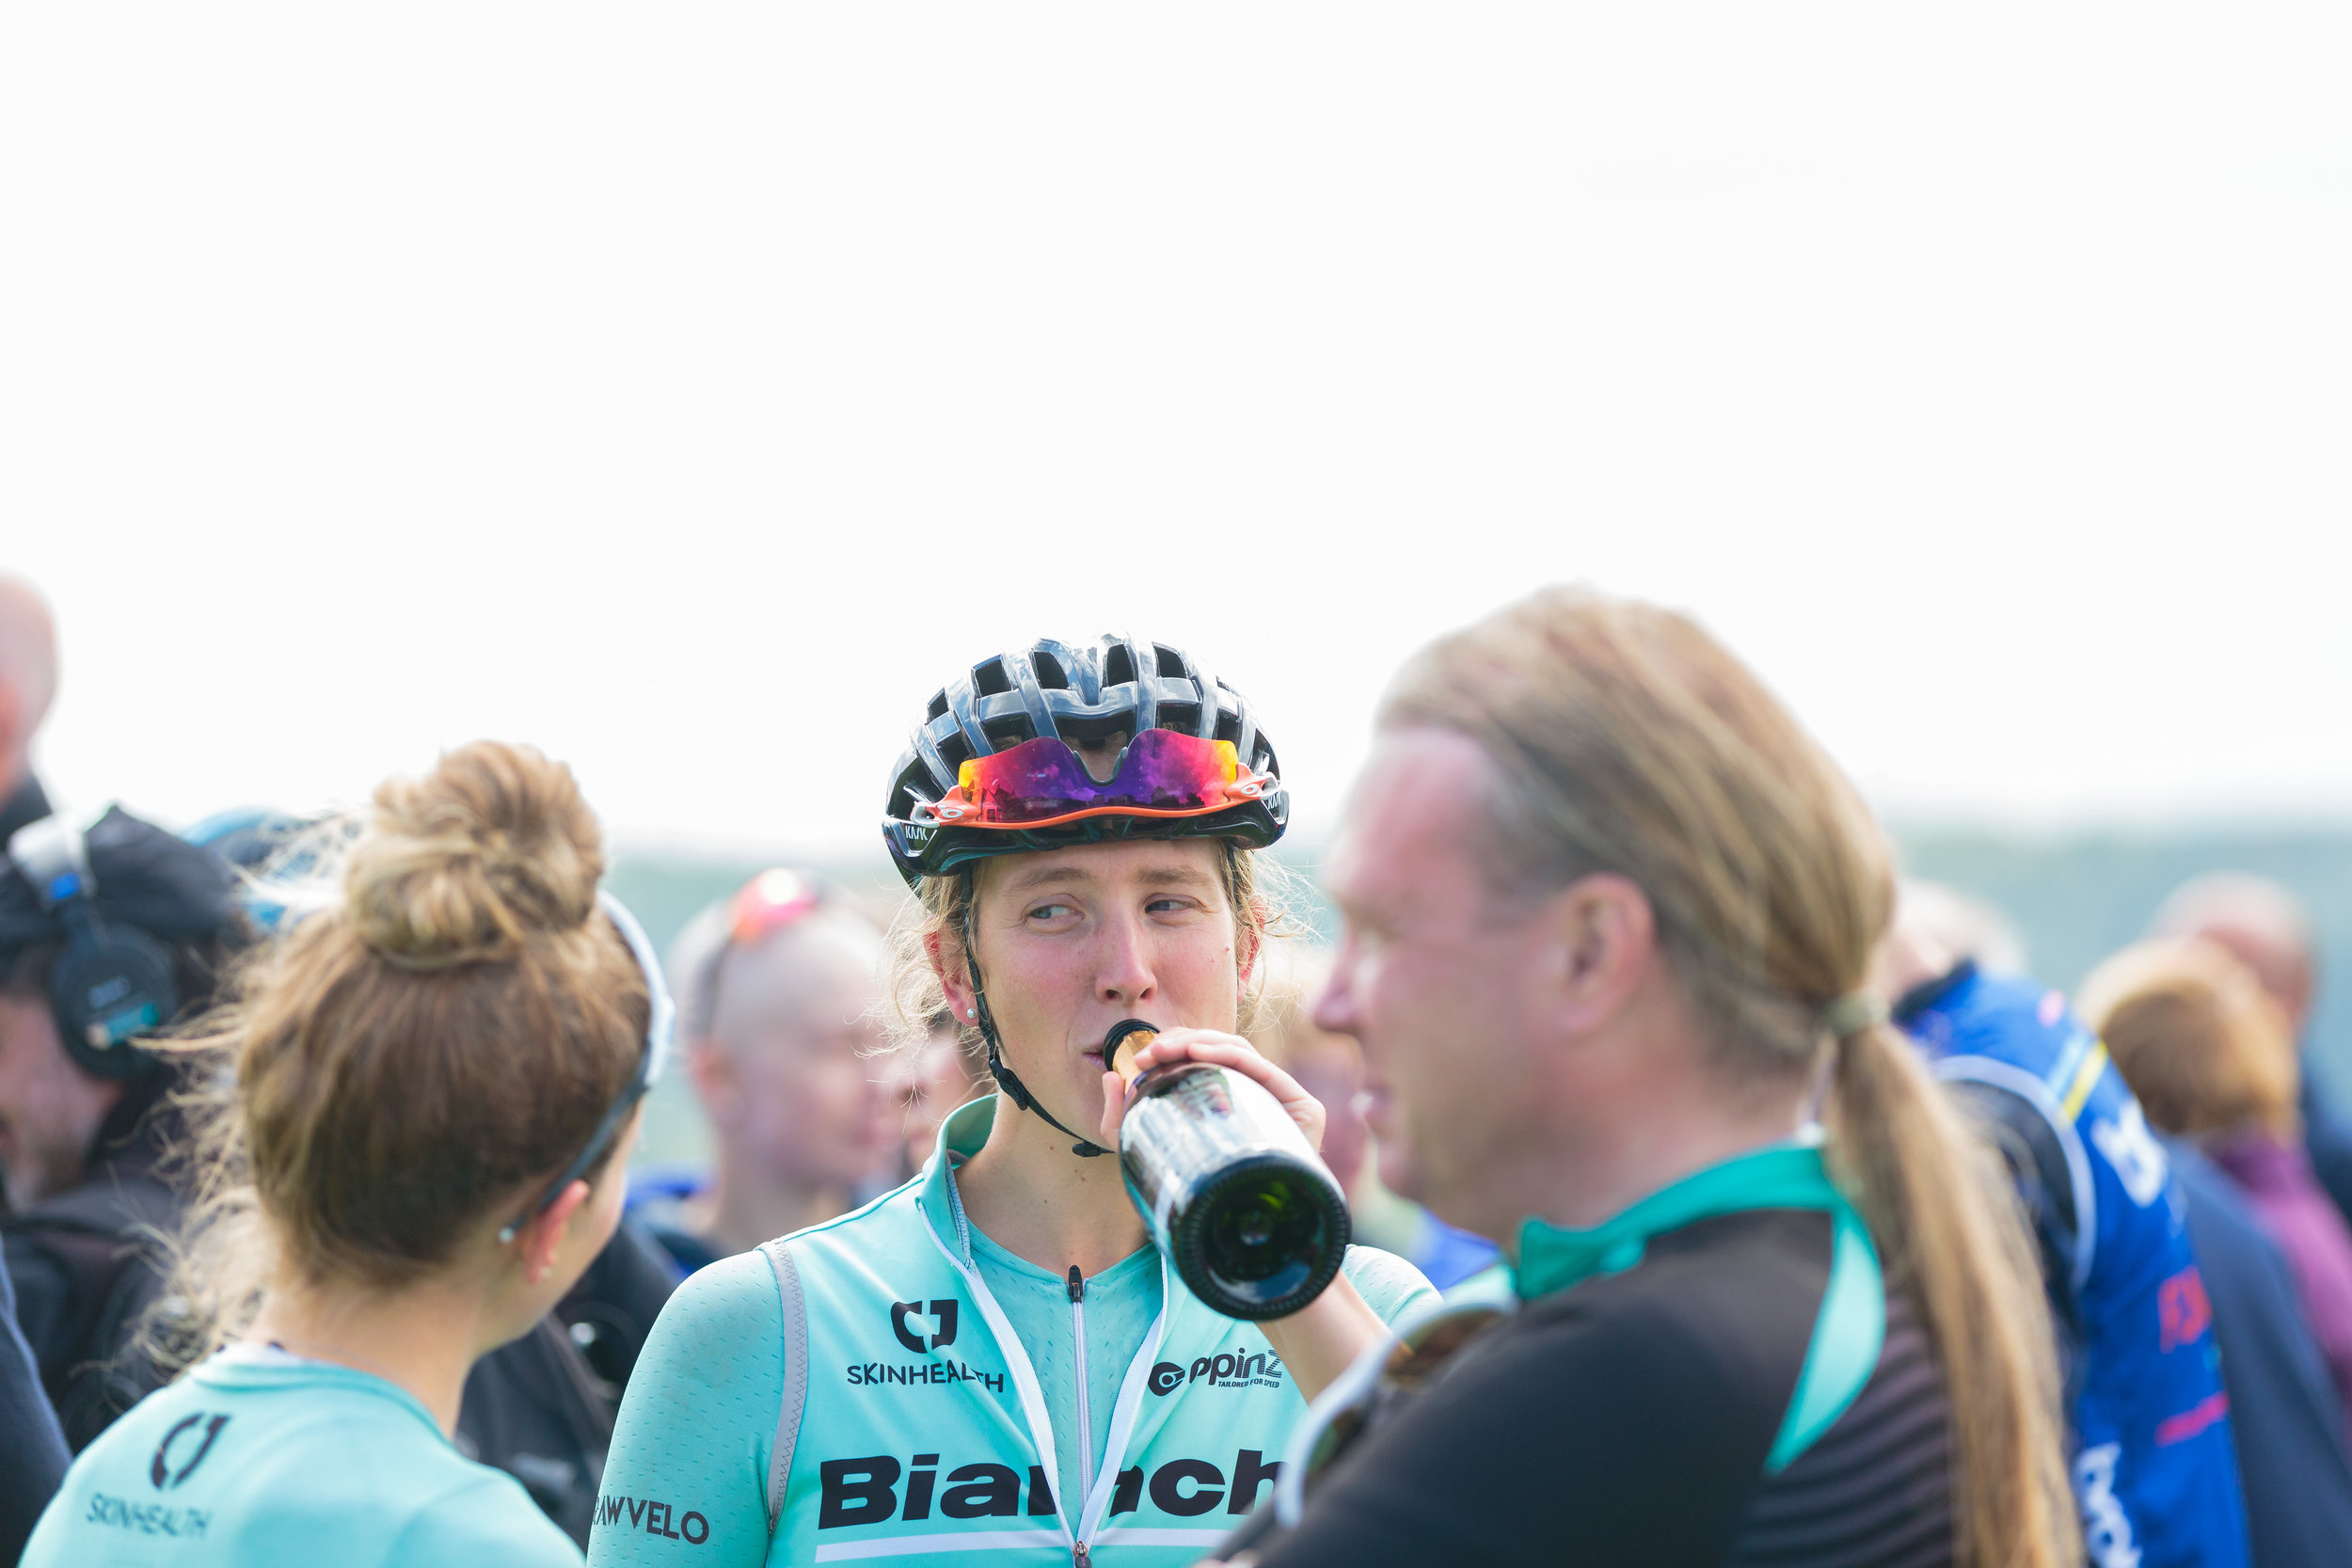 Bianchi Dama Riders know how to re-hydrate.